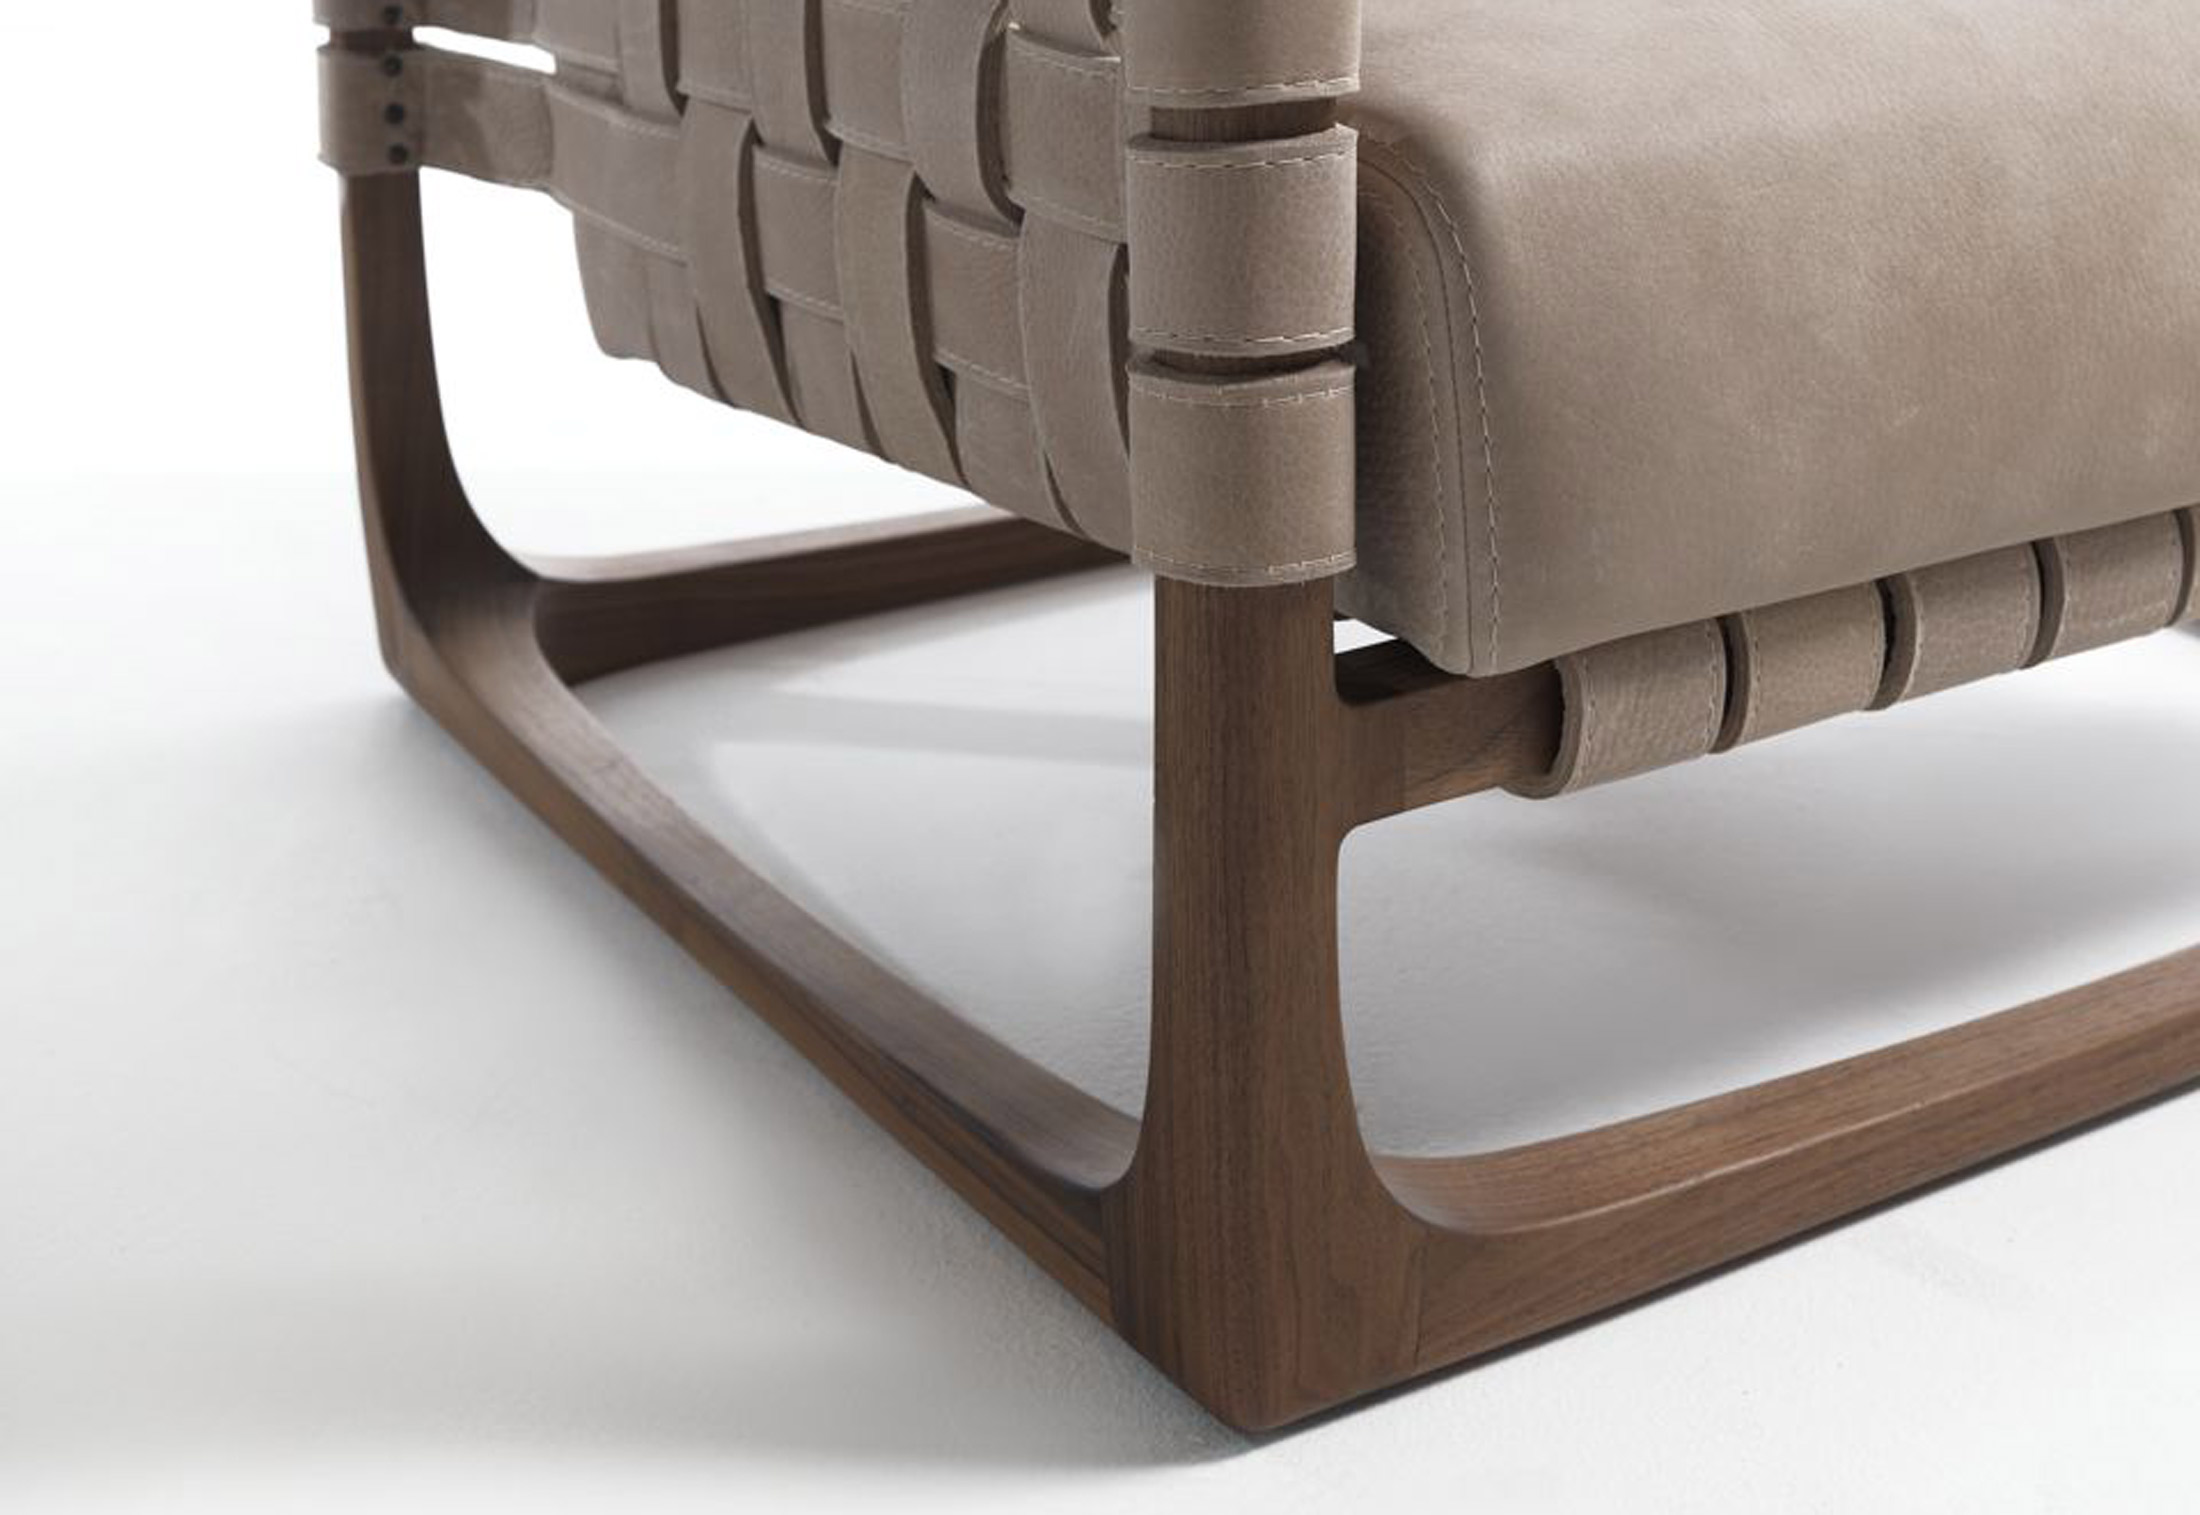 Bungalow Armchair By Riva 1920 Stylepark